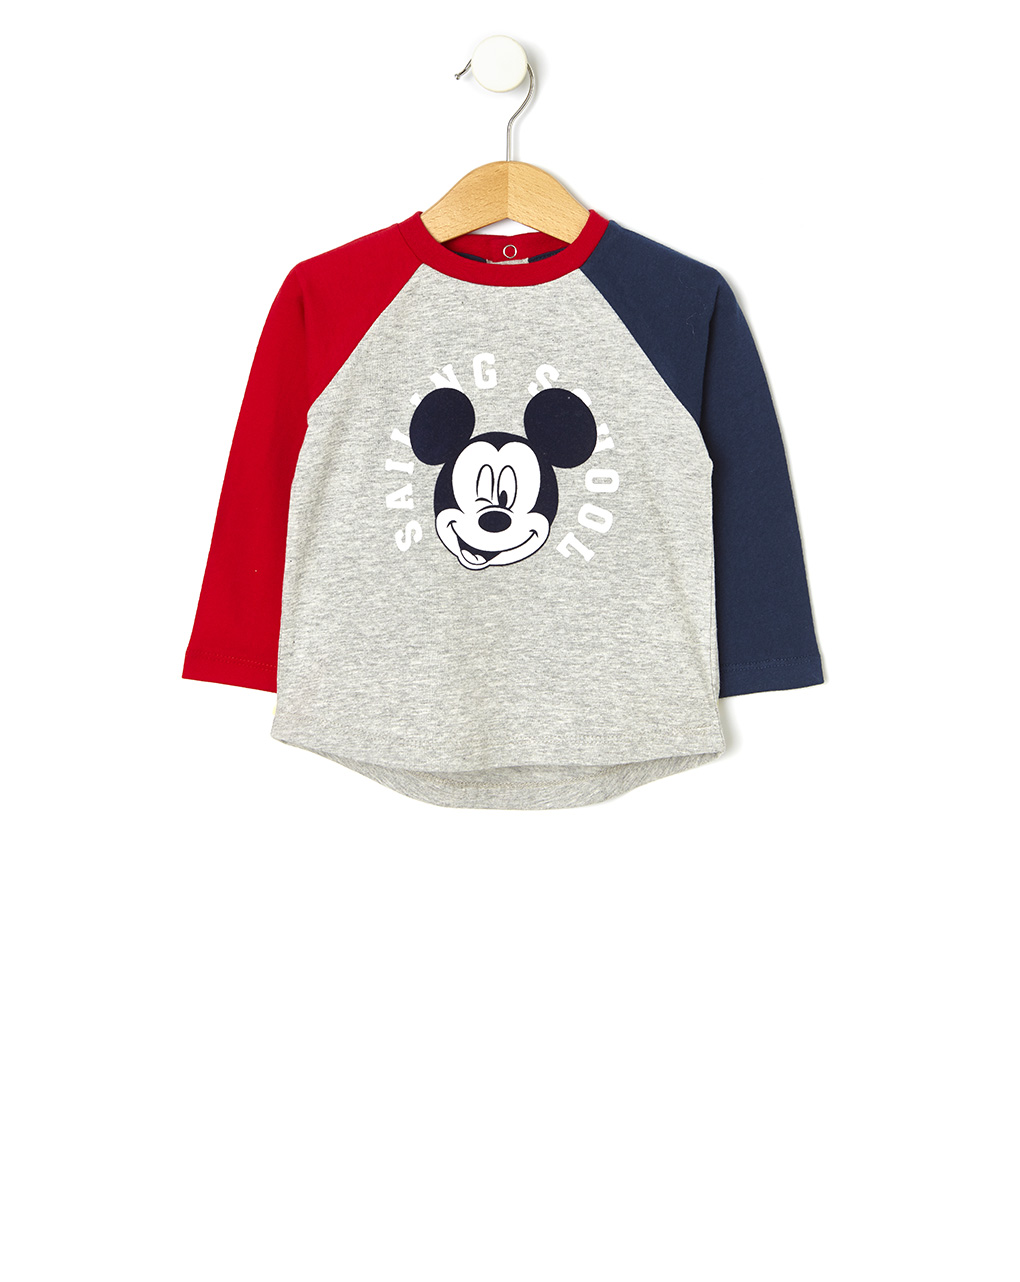 T-shirt stampa mickey mouse - Prénatal